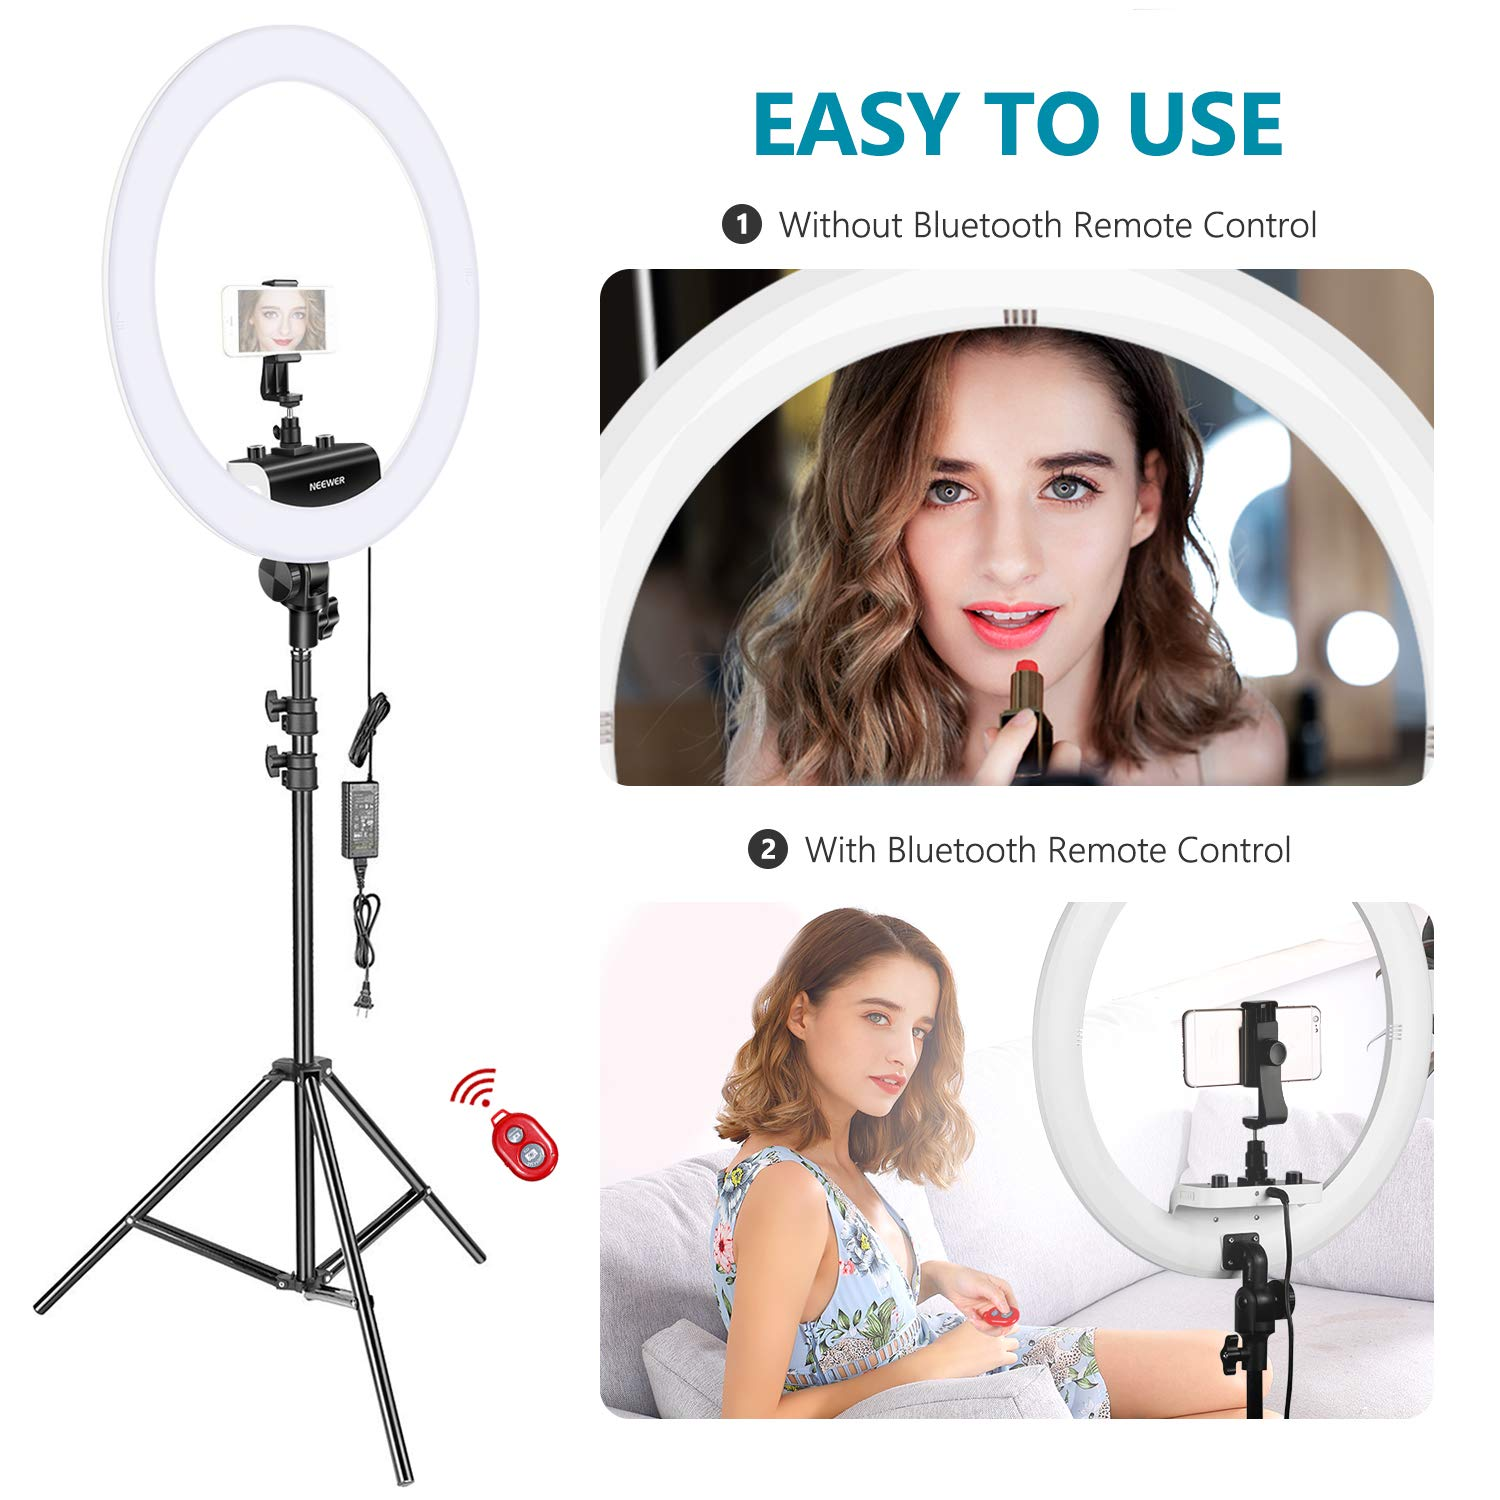 Neewer Ring Light Kit [Upgraded Version-1.8cm Ultra Slim] - 18 inches, 3200-5600K, Dimmable LED Ring Light with Light Stand, Rotatable Phone Holder, Hot Shoe Adapter for Portrait Makeup Video Shooting by Neewer (Image #7)